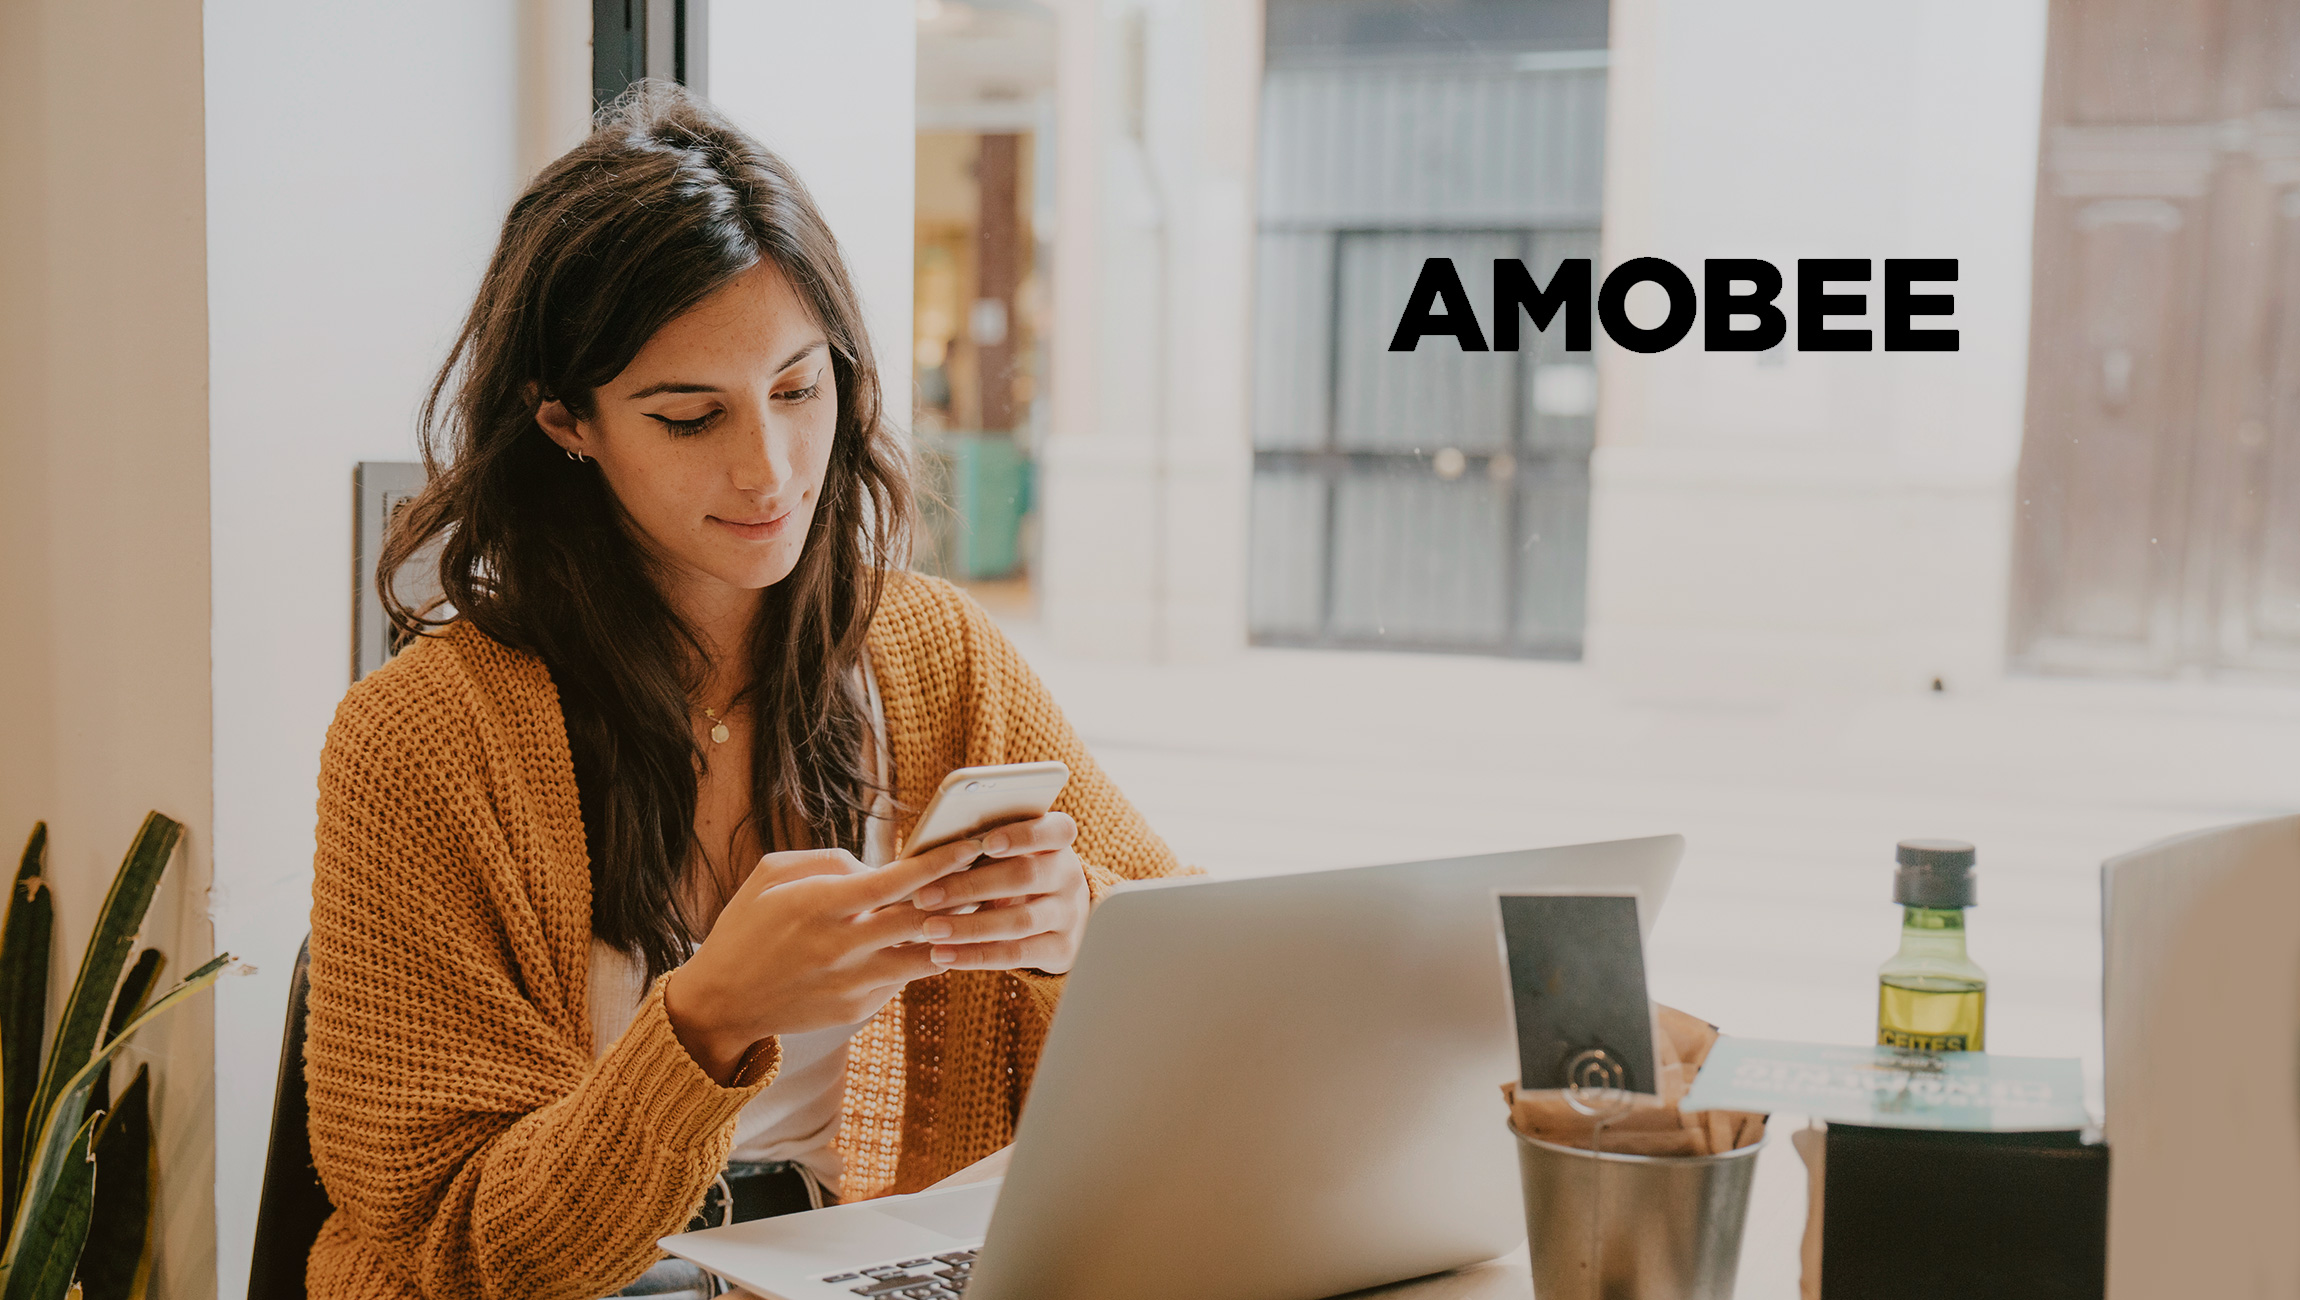 Amobee Announces Integration of Nielsen Data Allowing Advertisers to Plan Across TV and Digital Using Single Audience